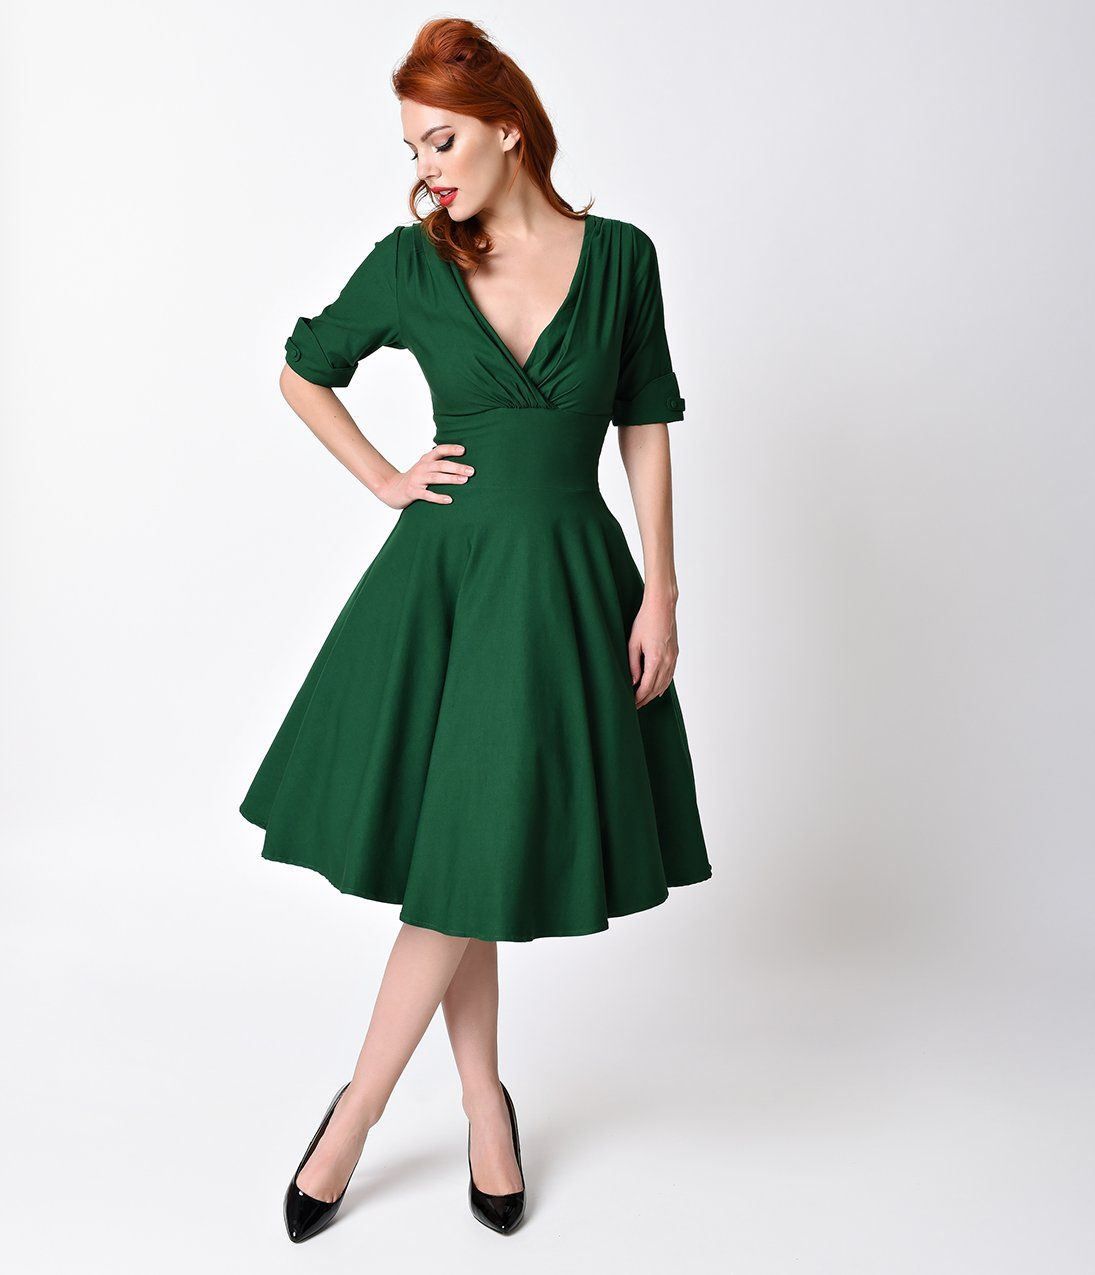 d09e365f64e9 1950s Dresses, 50s Dresses | Swing, Wiggle, Pin Up Dresses 1950S Emerald  Green Delores Swing Dress With Sleeves $88.00 AT vintagedancer.com